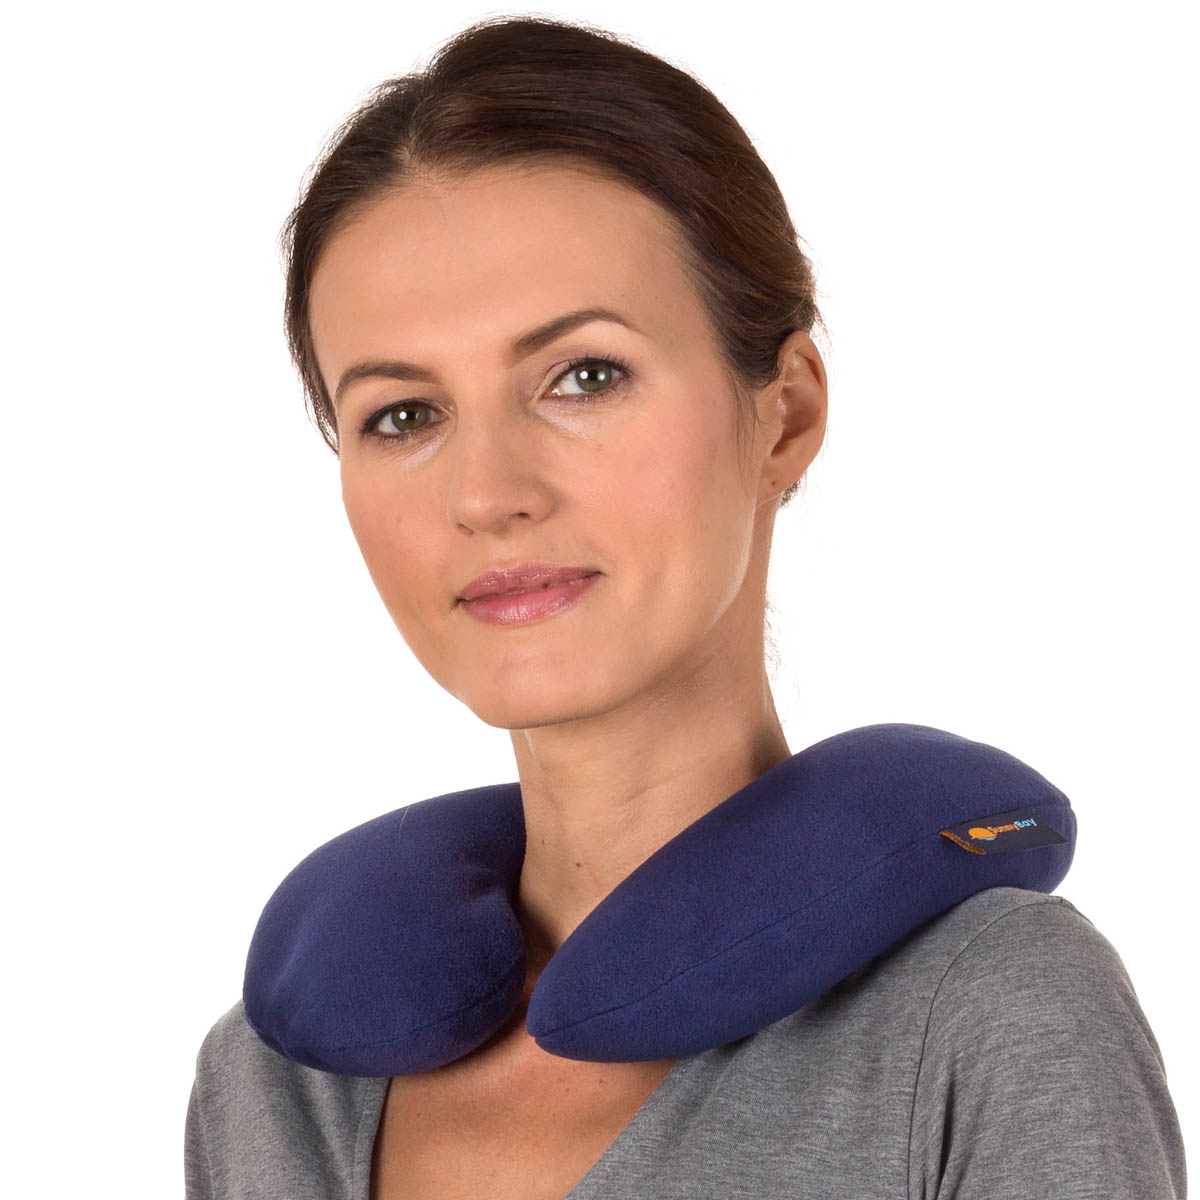 Sunny Bay Washable C-shaped Neck Wrap, Whole Grain, Microwavable Moist Heat, For Neck Pain Relief